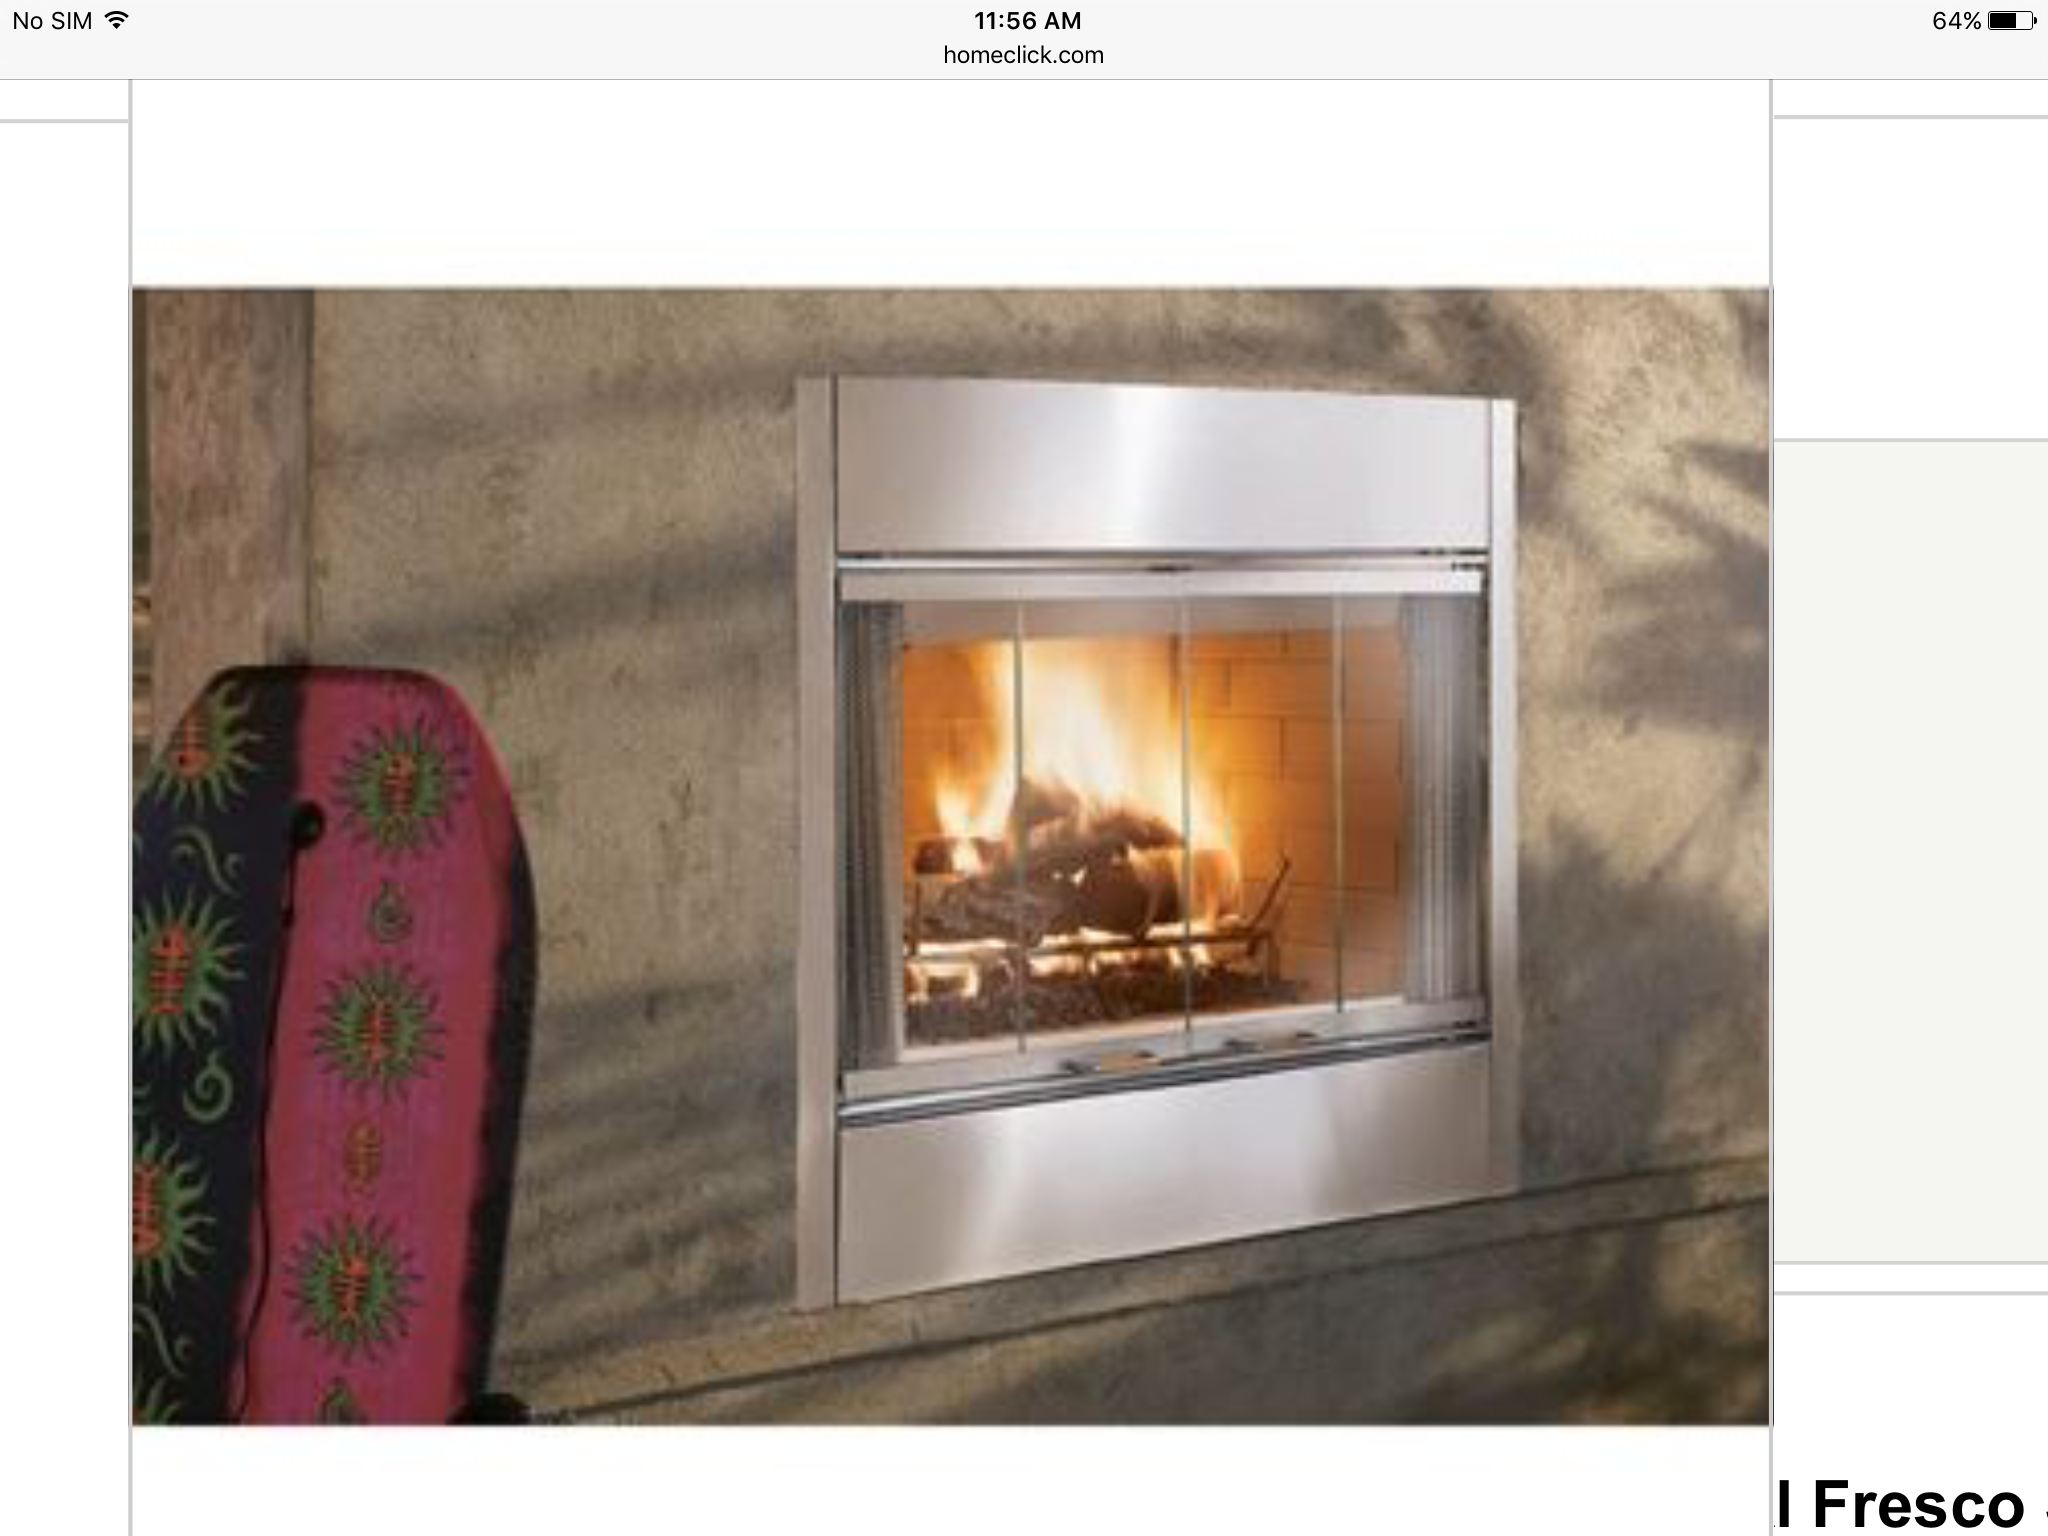 dont fireplace integra stove multifuel insert majestic miss tec sf cast quick firemaster out